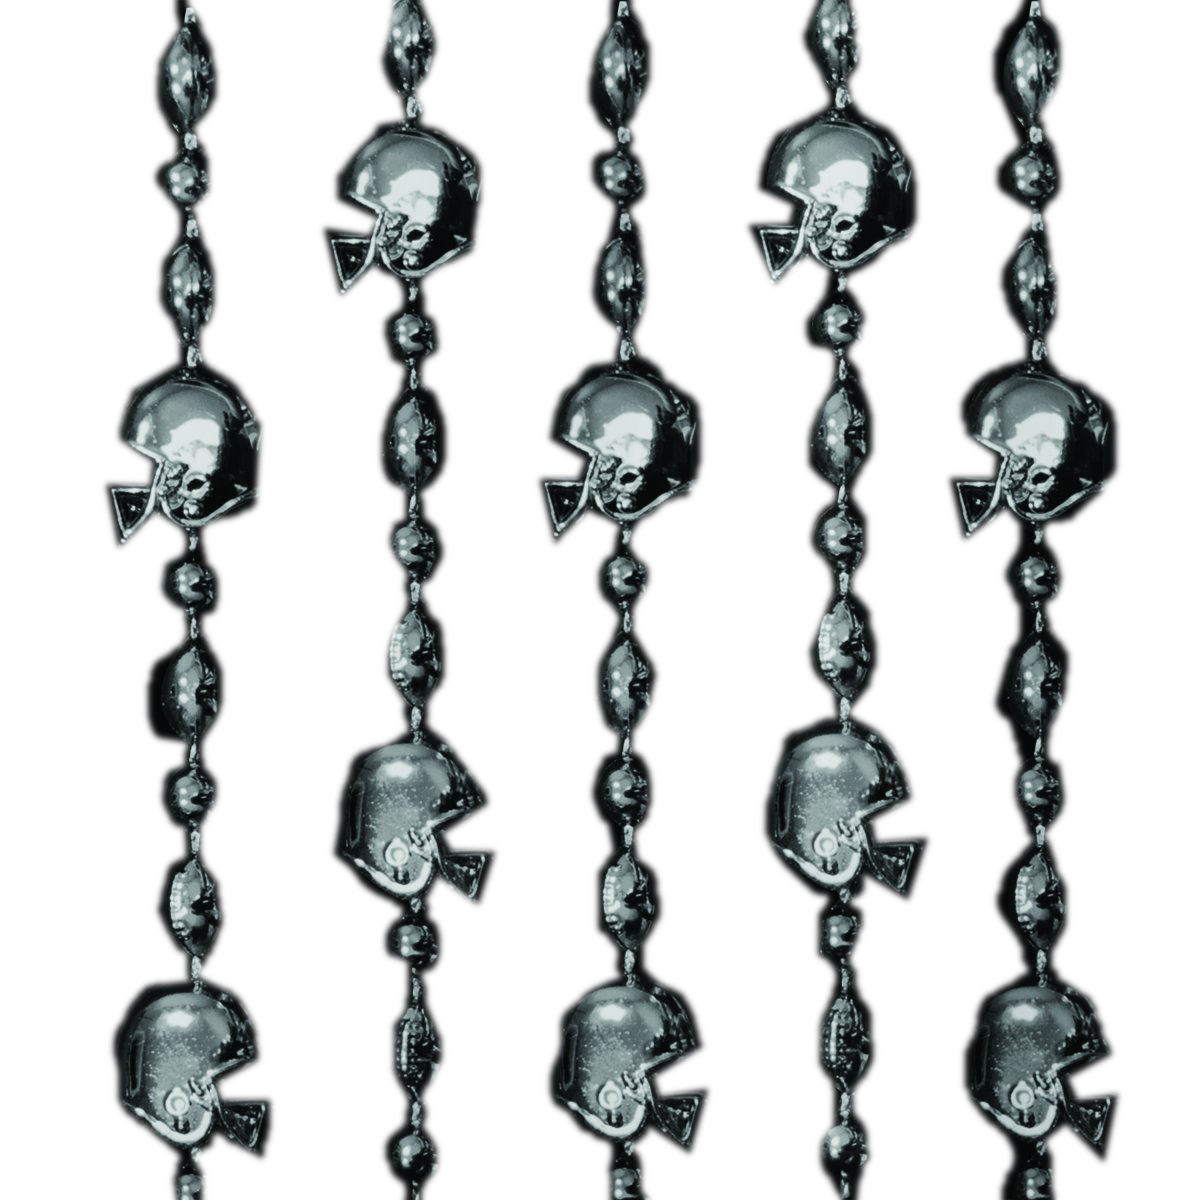 Football Helmet Bead Necklaces Black Pack of 12 All Products